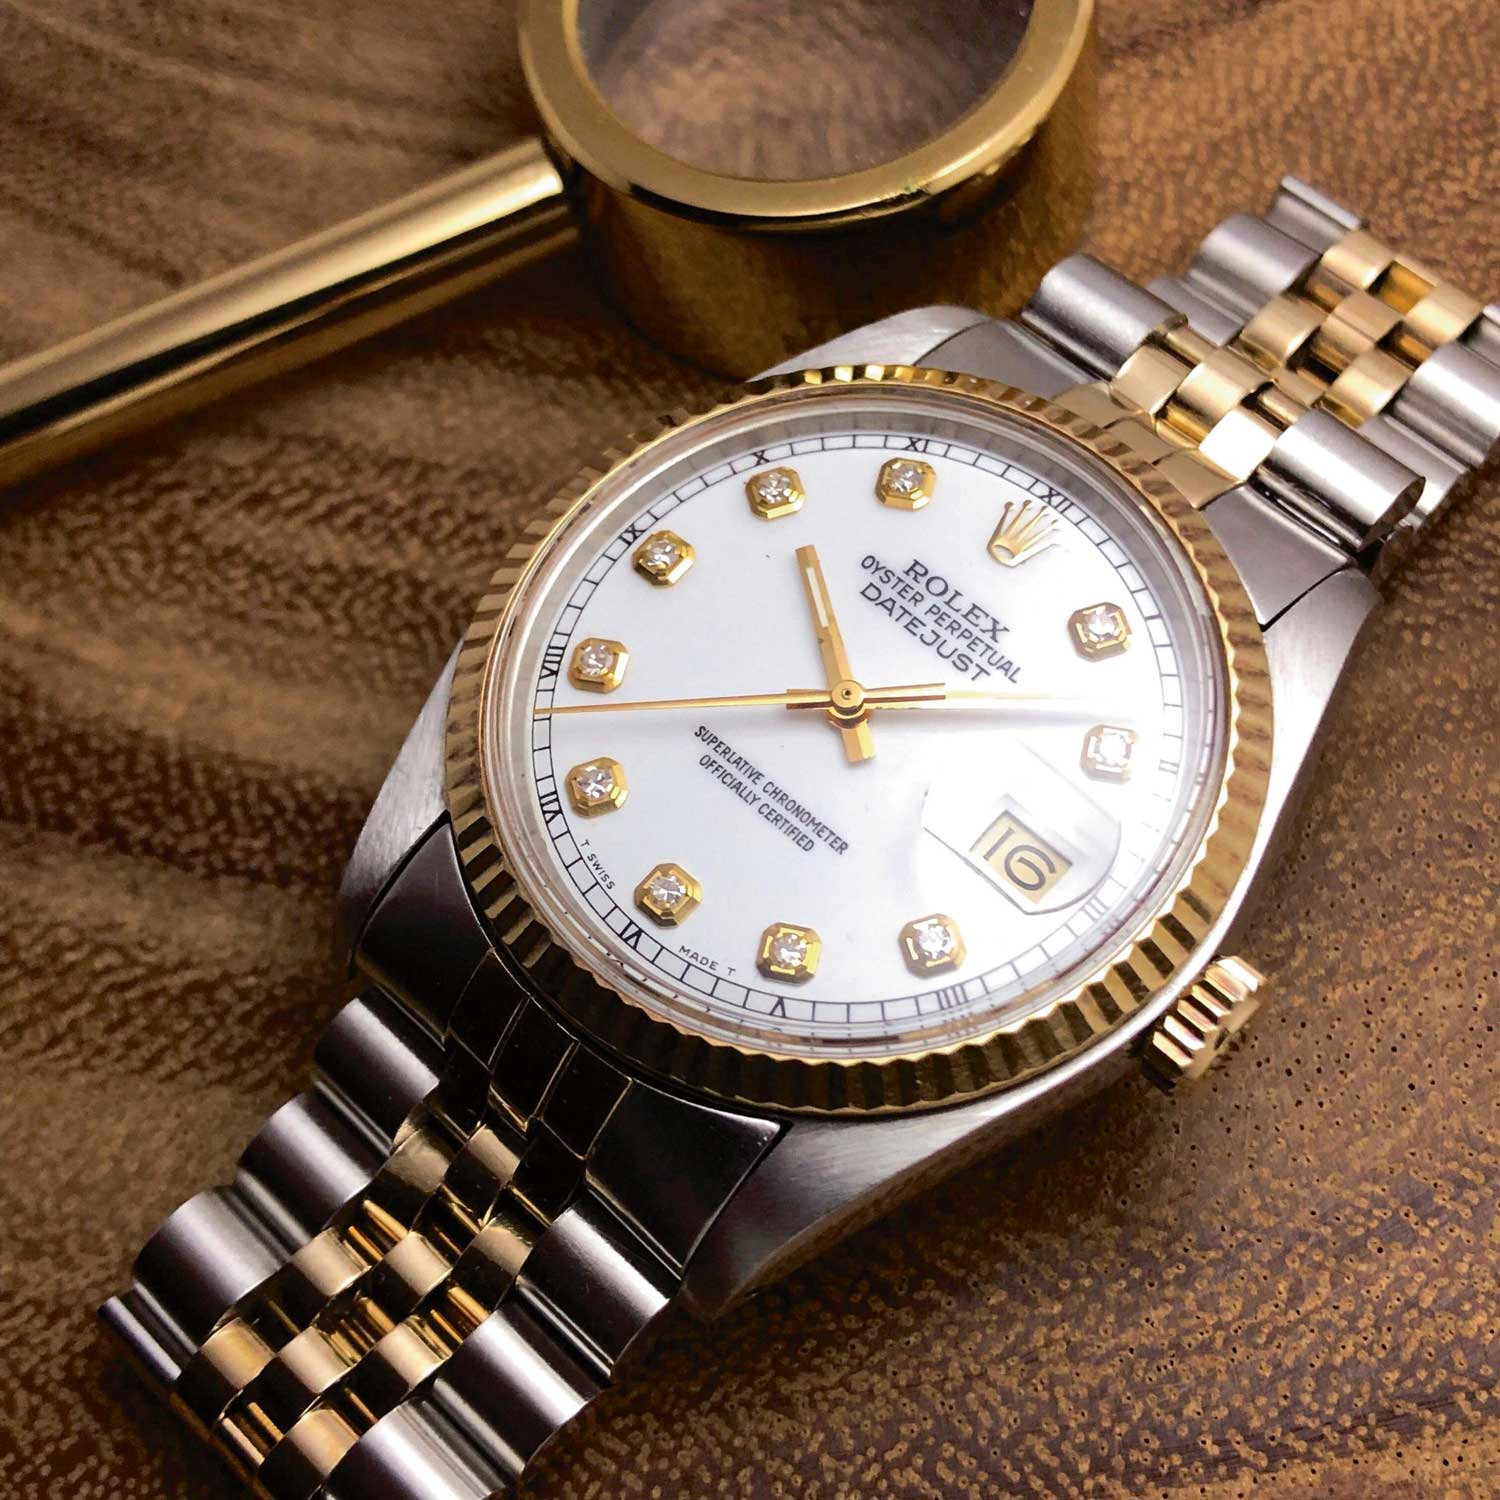 Two-tone Datejust with applied diamond hour markers